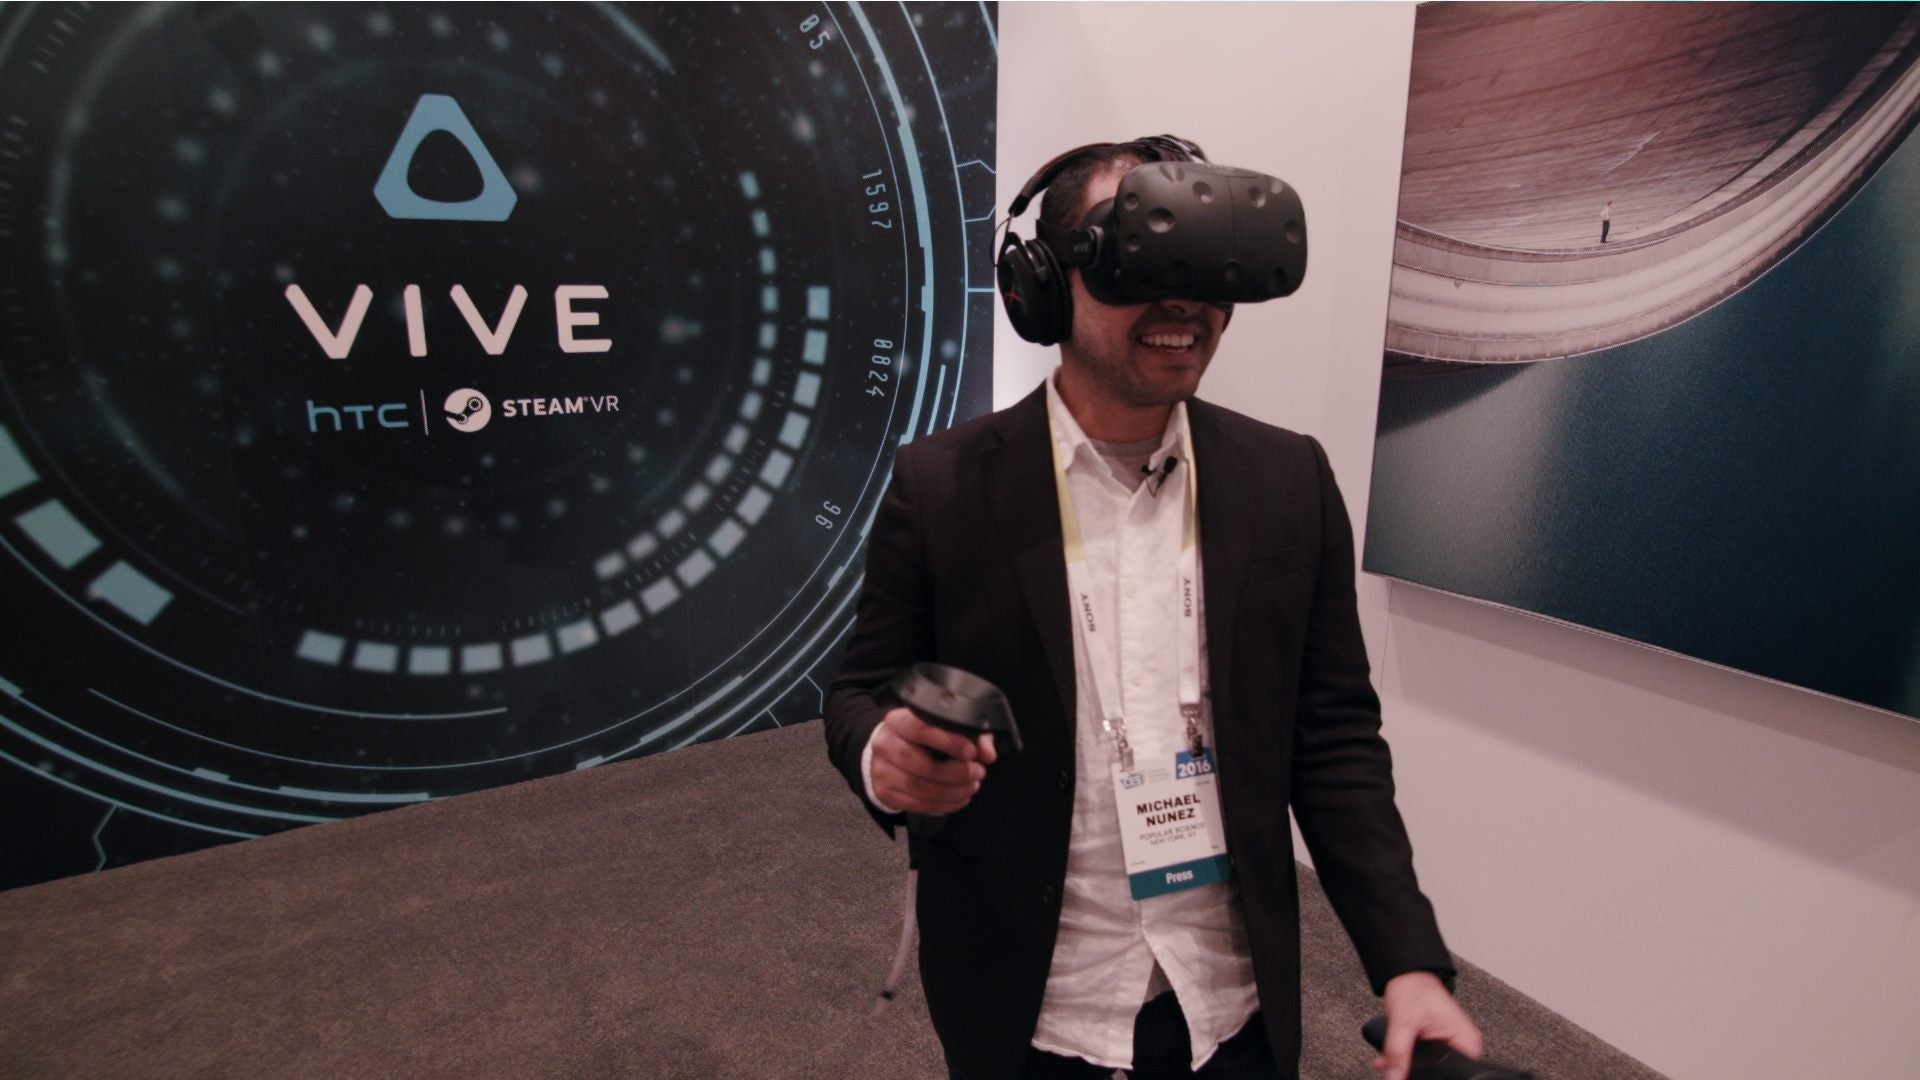 VR Might Not Be Ready In 2016, But It's The Future